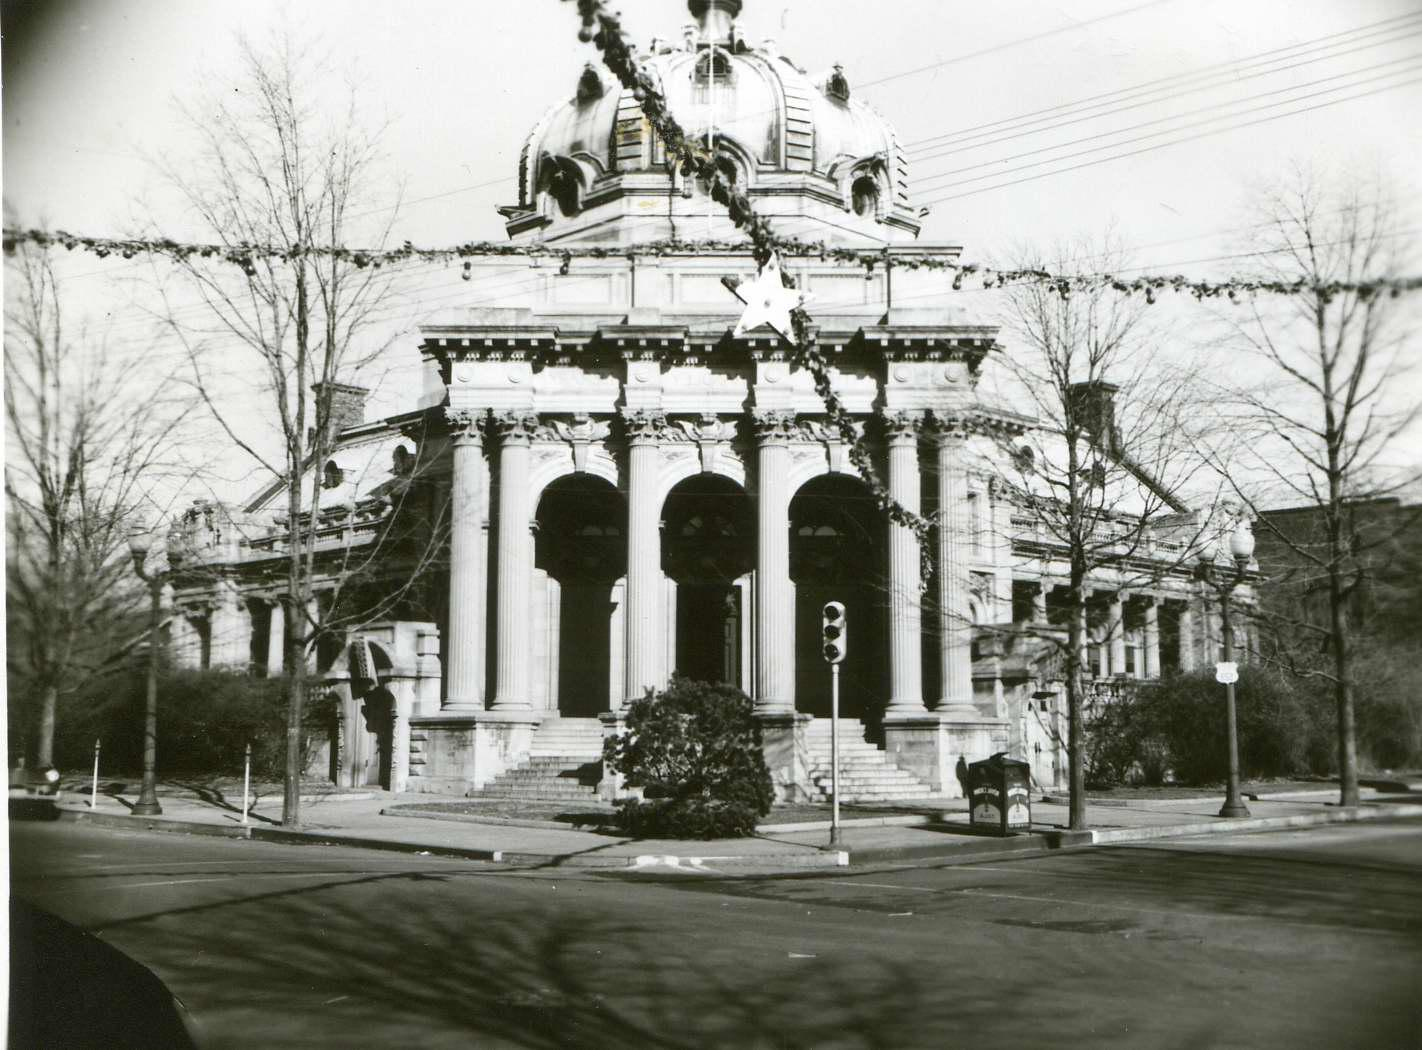 Handley Library about 1940 near downtown Winchester, VA.